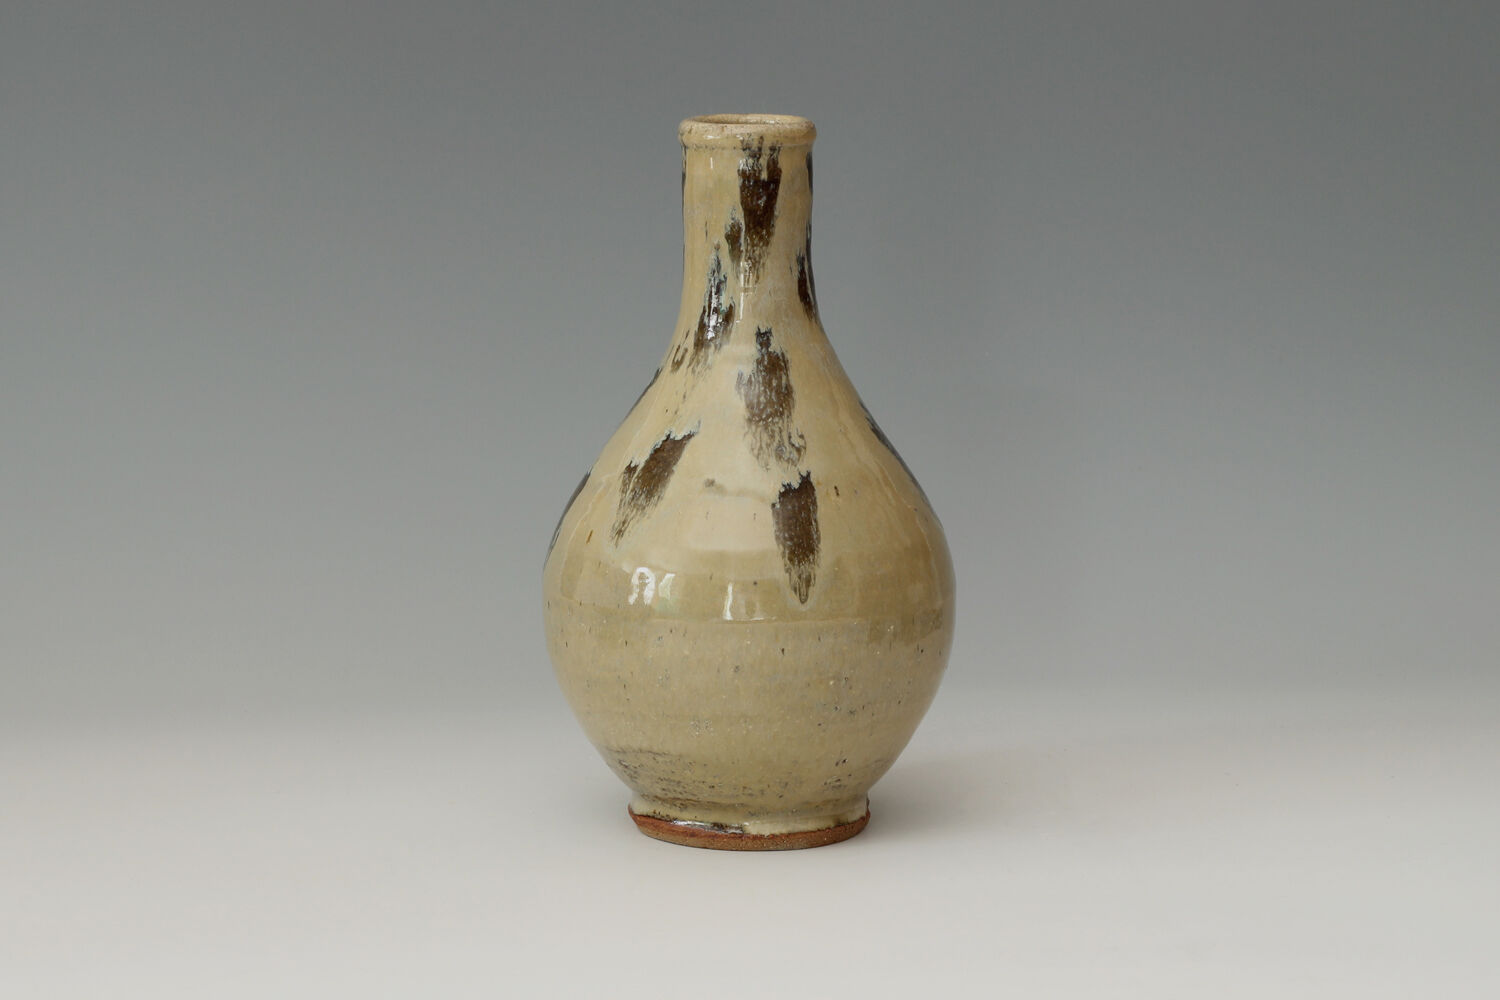 Jim Malone Ceramic Bottle 06